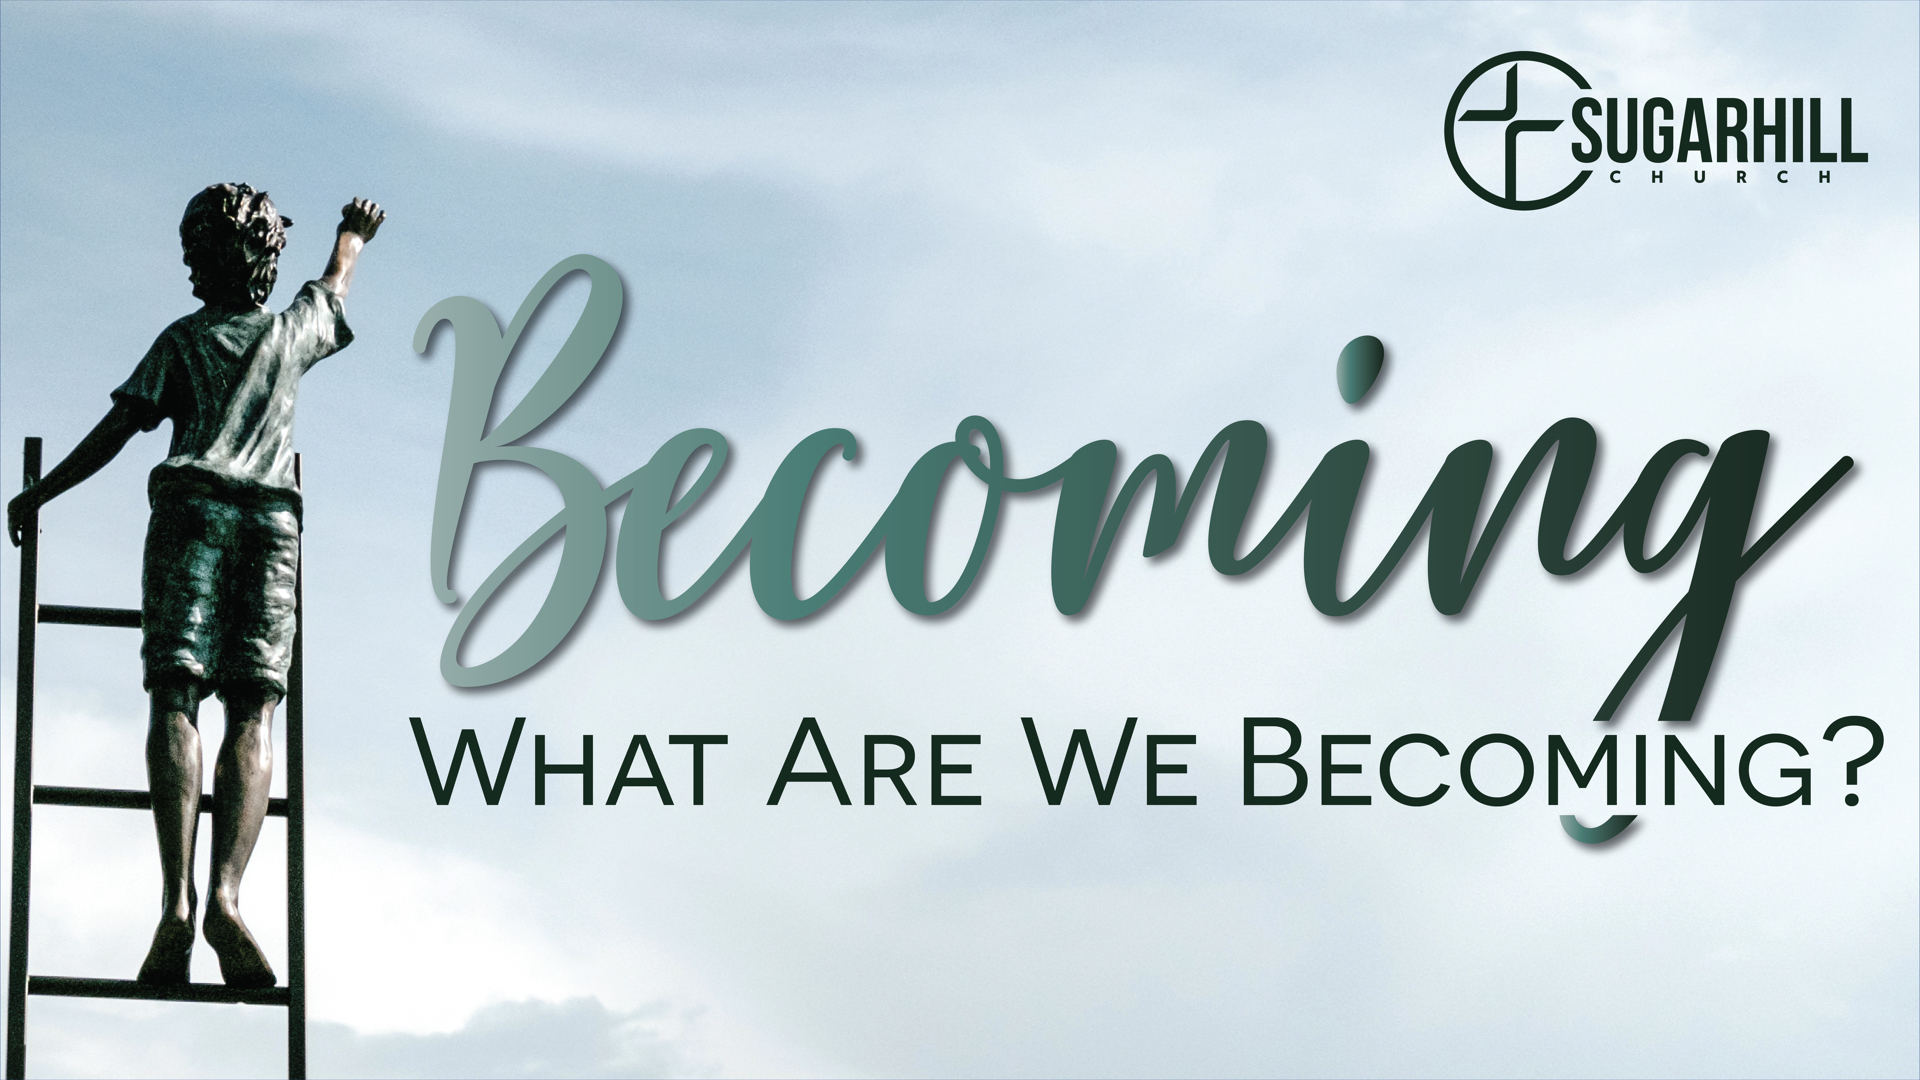 What Are We Becoming?